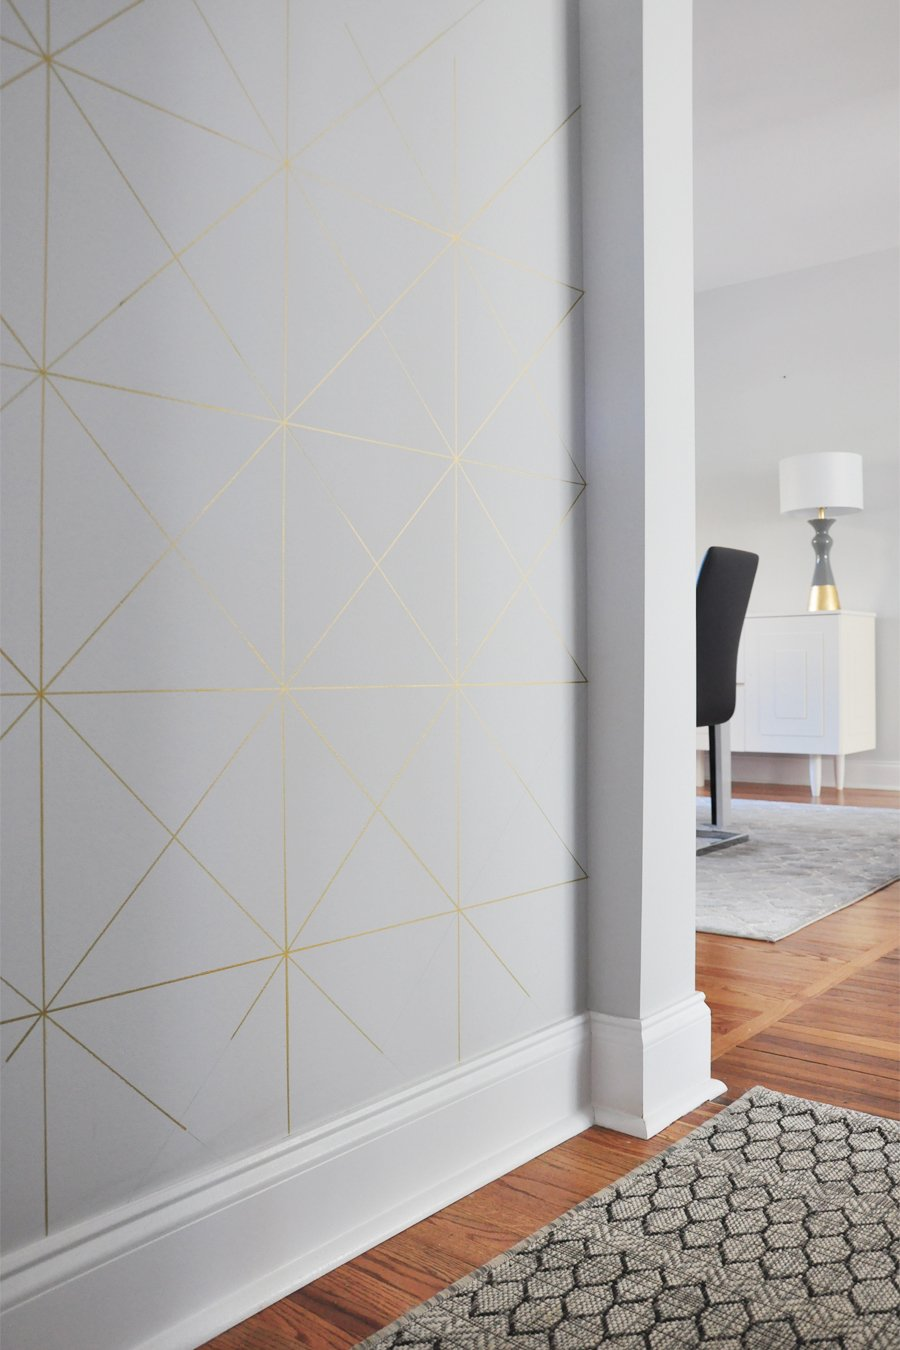 DIY Gold Sharpie Wall